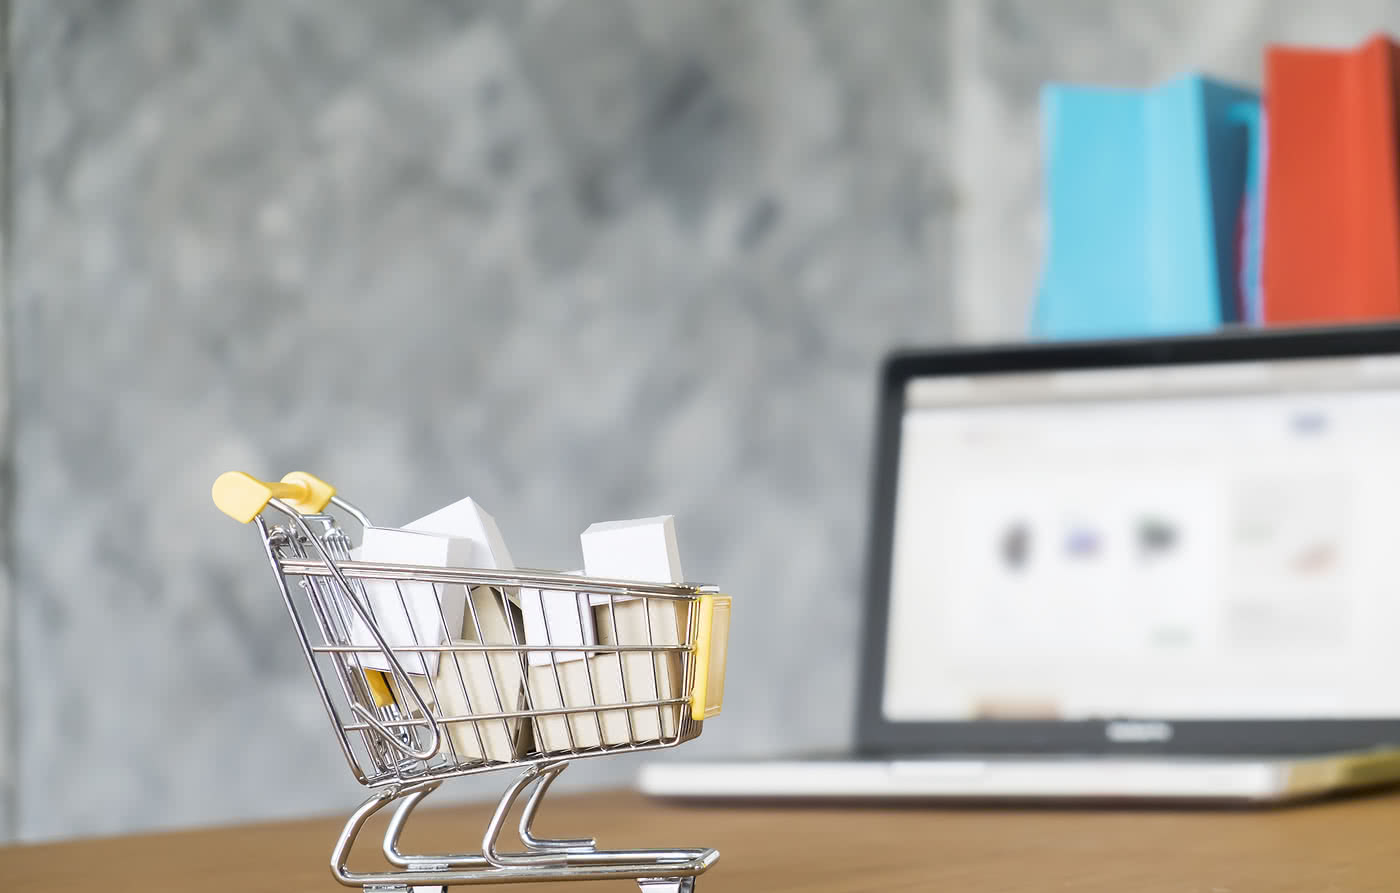 A miniature grocery cart for your website